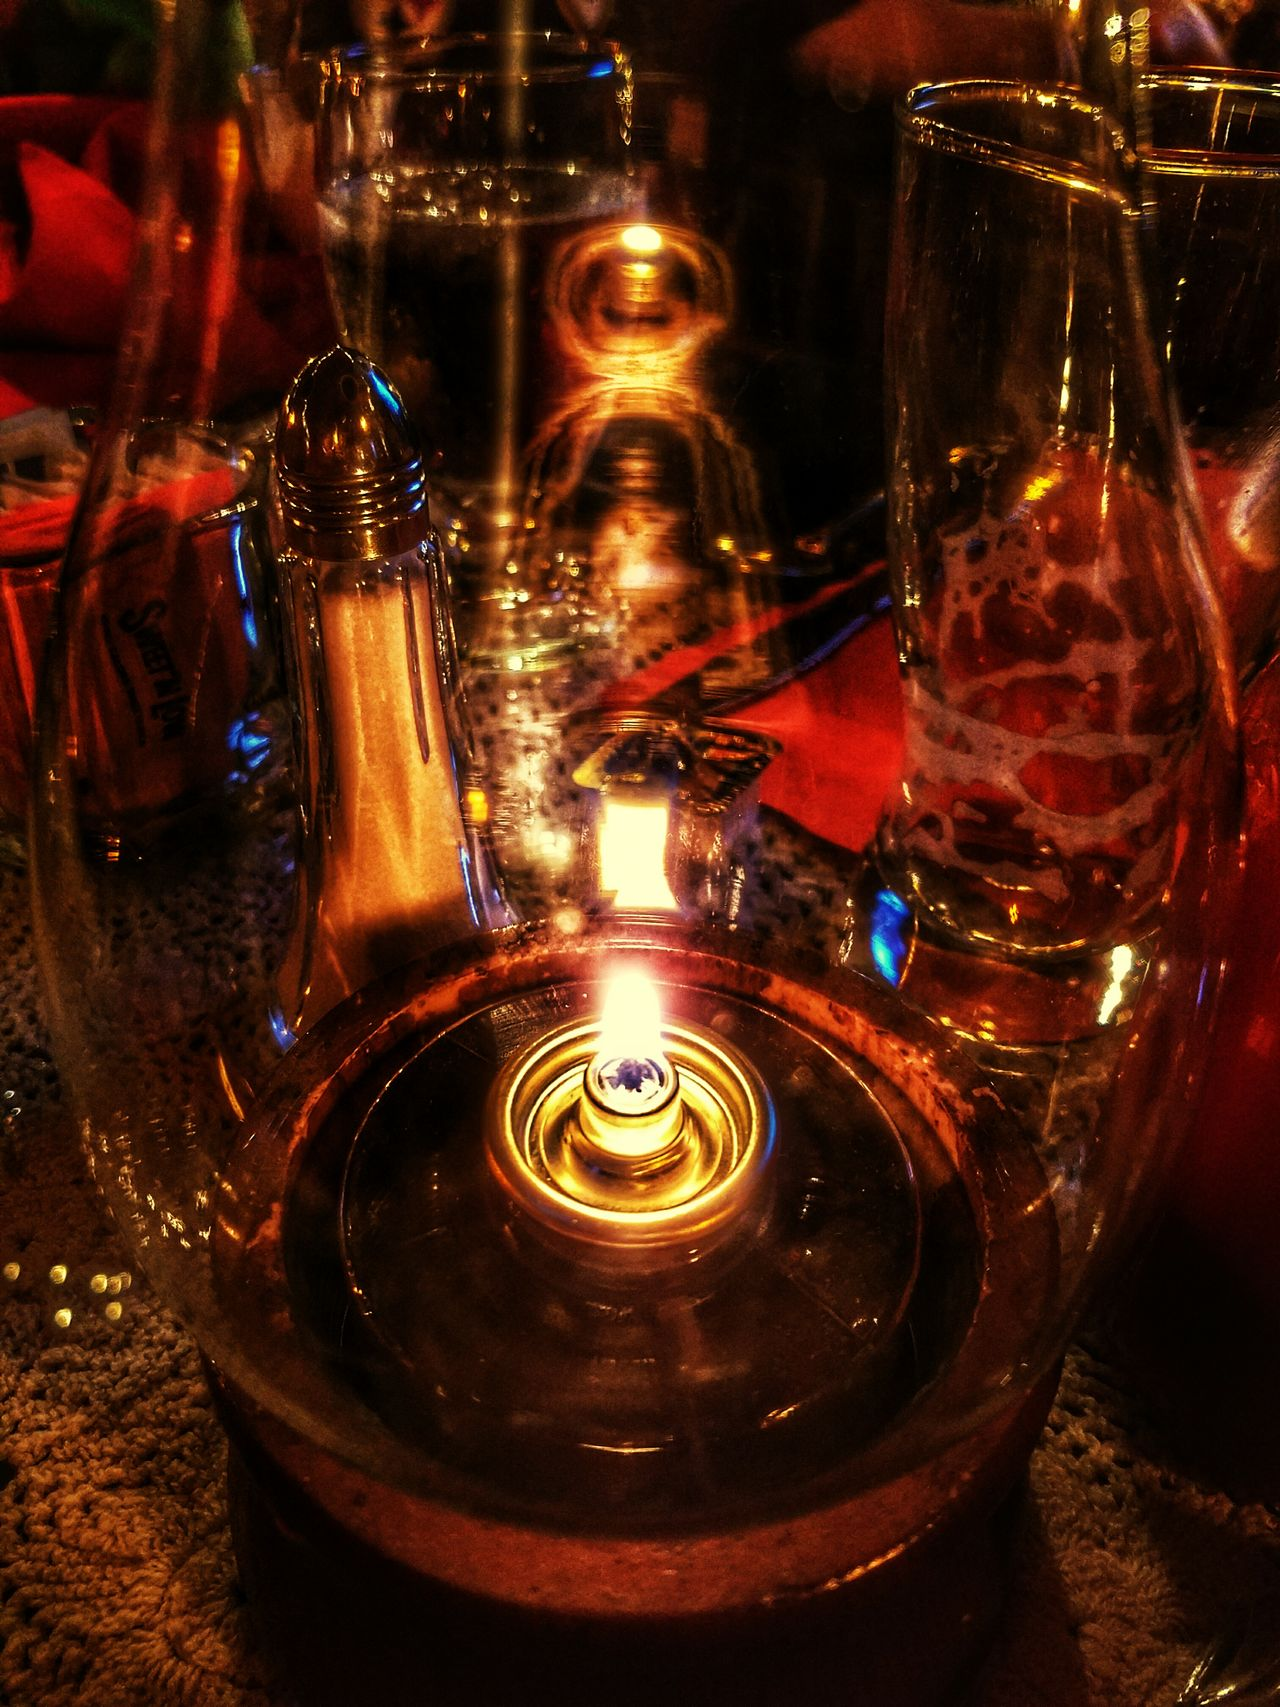 Illuminated Futuristic No People Burning Night Indoors  Close-up Indoors  Romantic Place Dinner For Two Hurricane Lamp